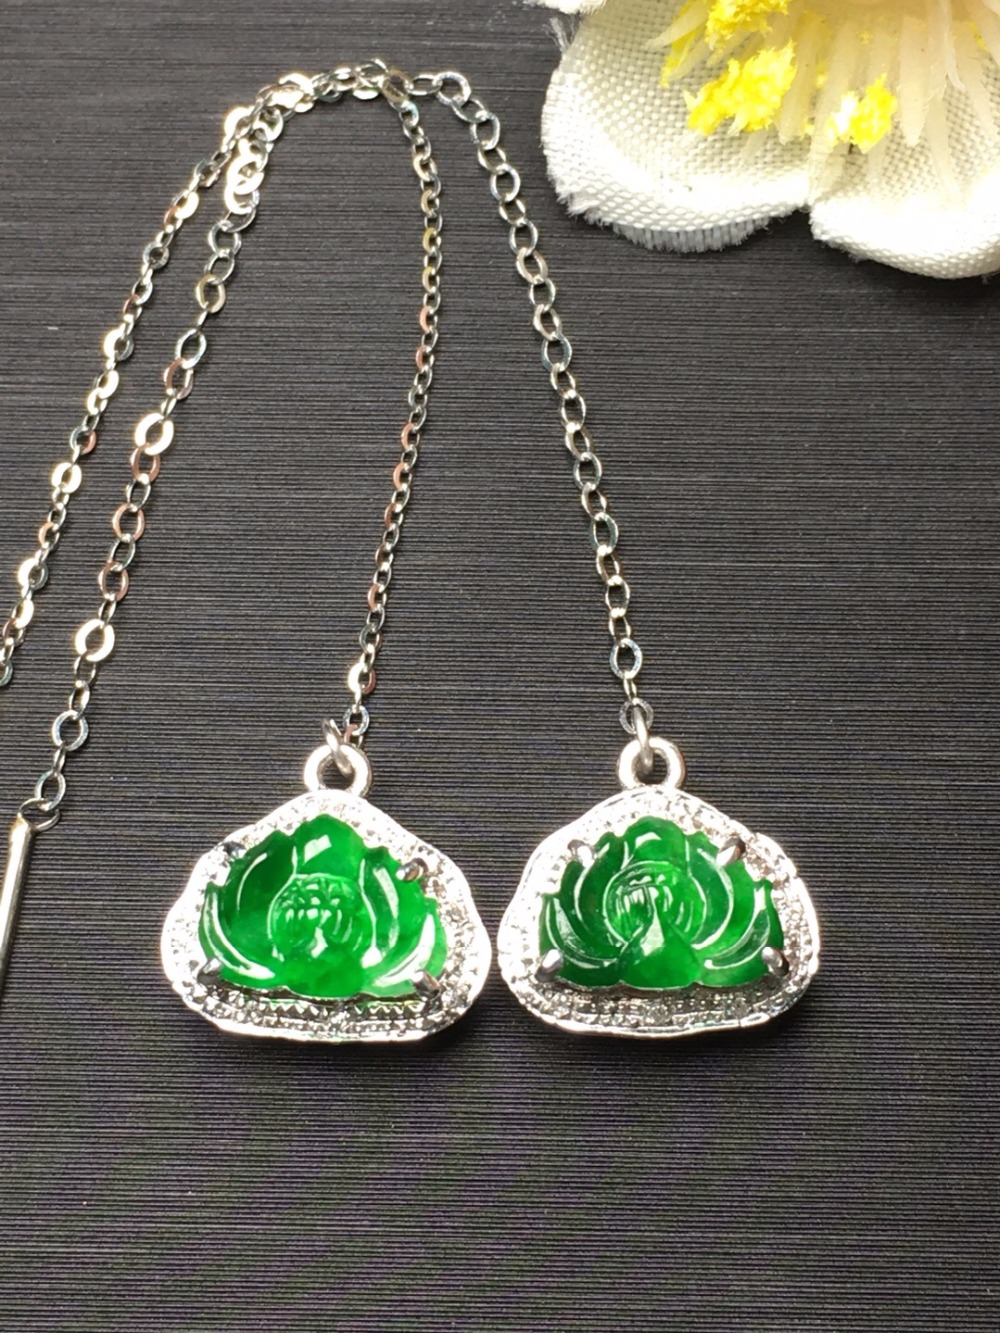 Fine Jewelry Jadite Real 18K White Gold AU750 100% Natural Green Lotus Jade Gemstone Myanmer Origin Drop Earrings for Women